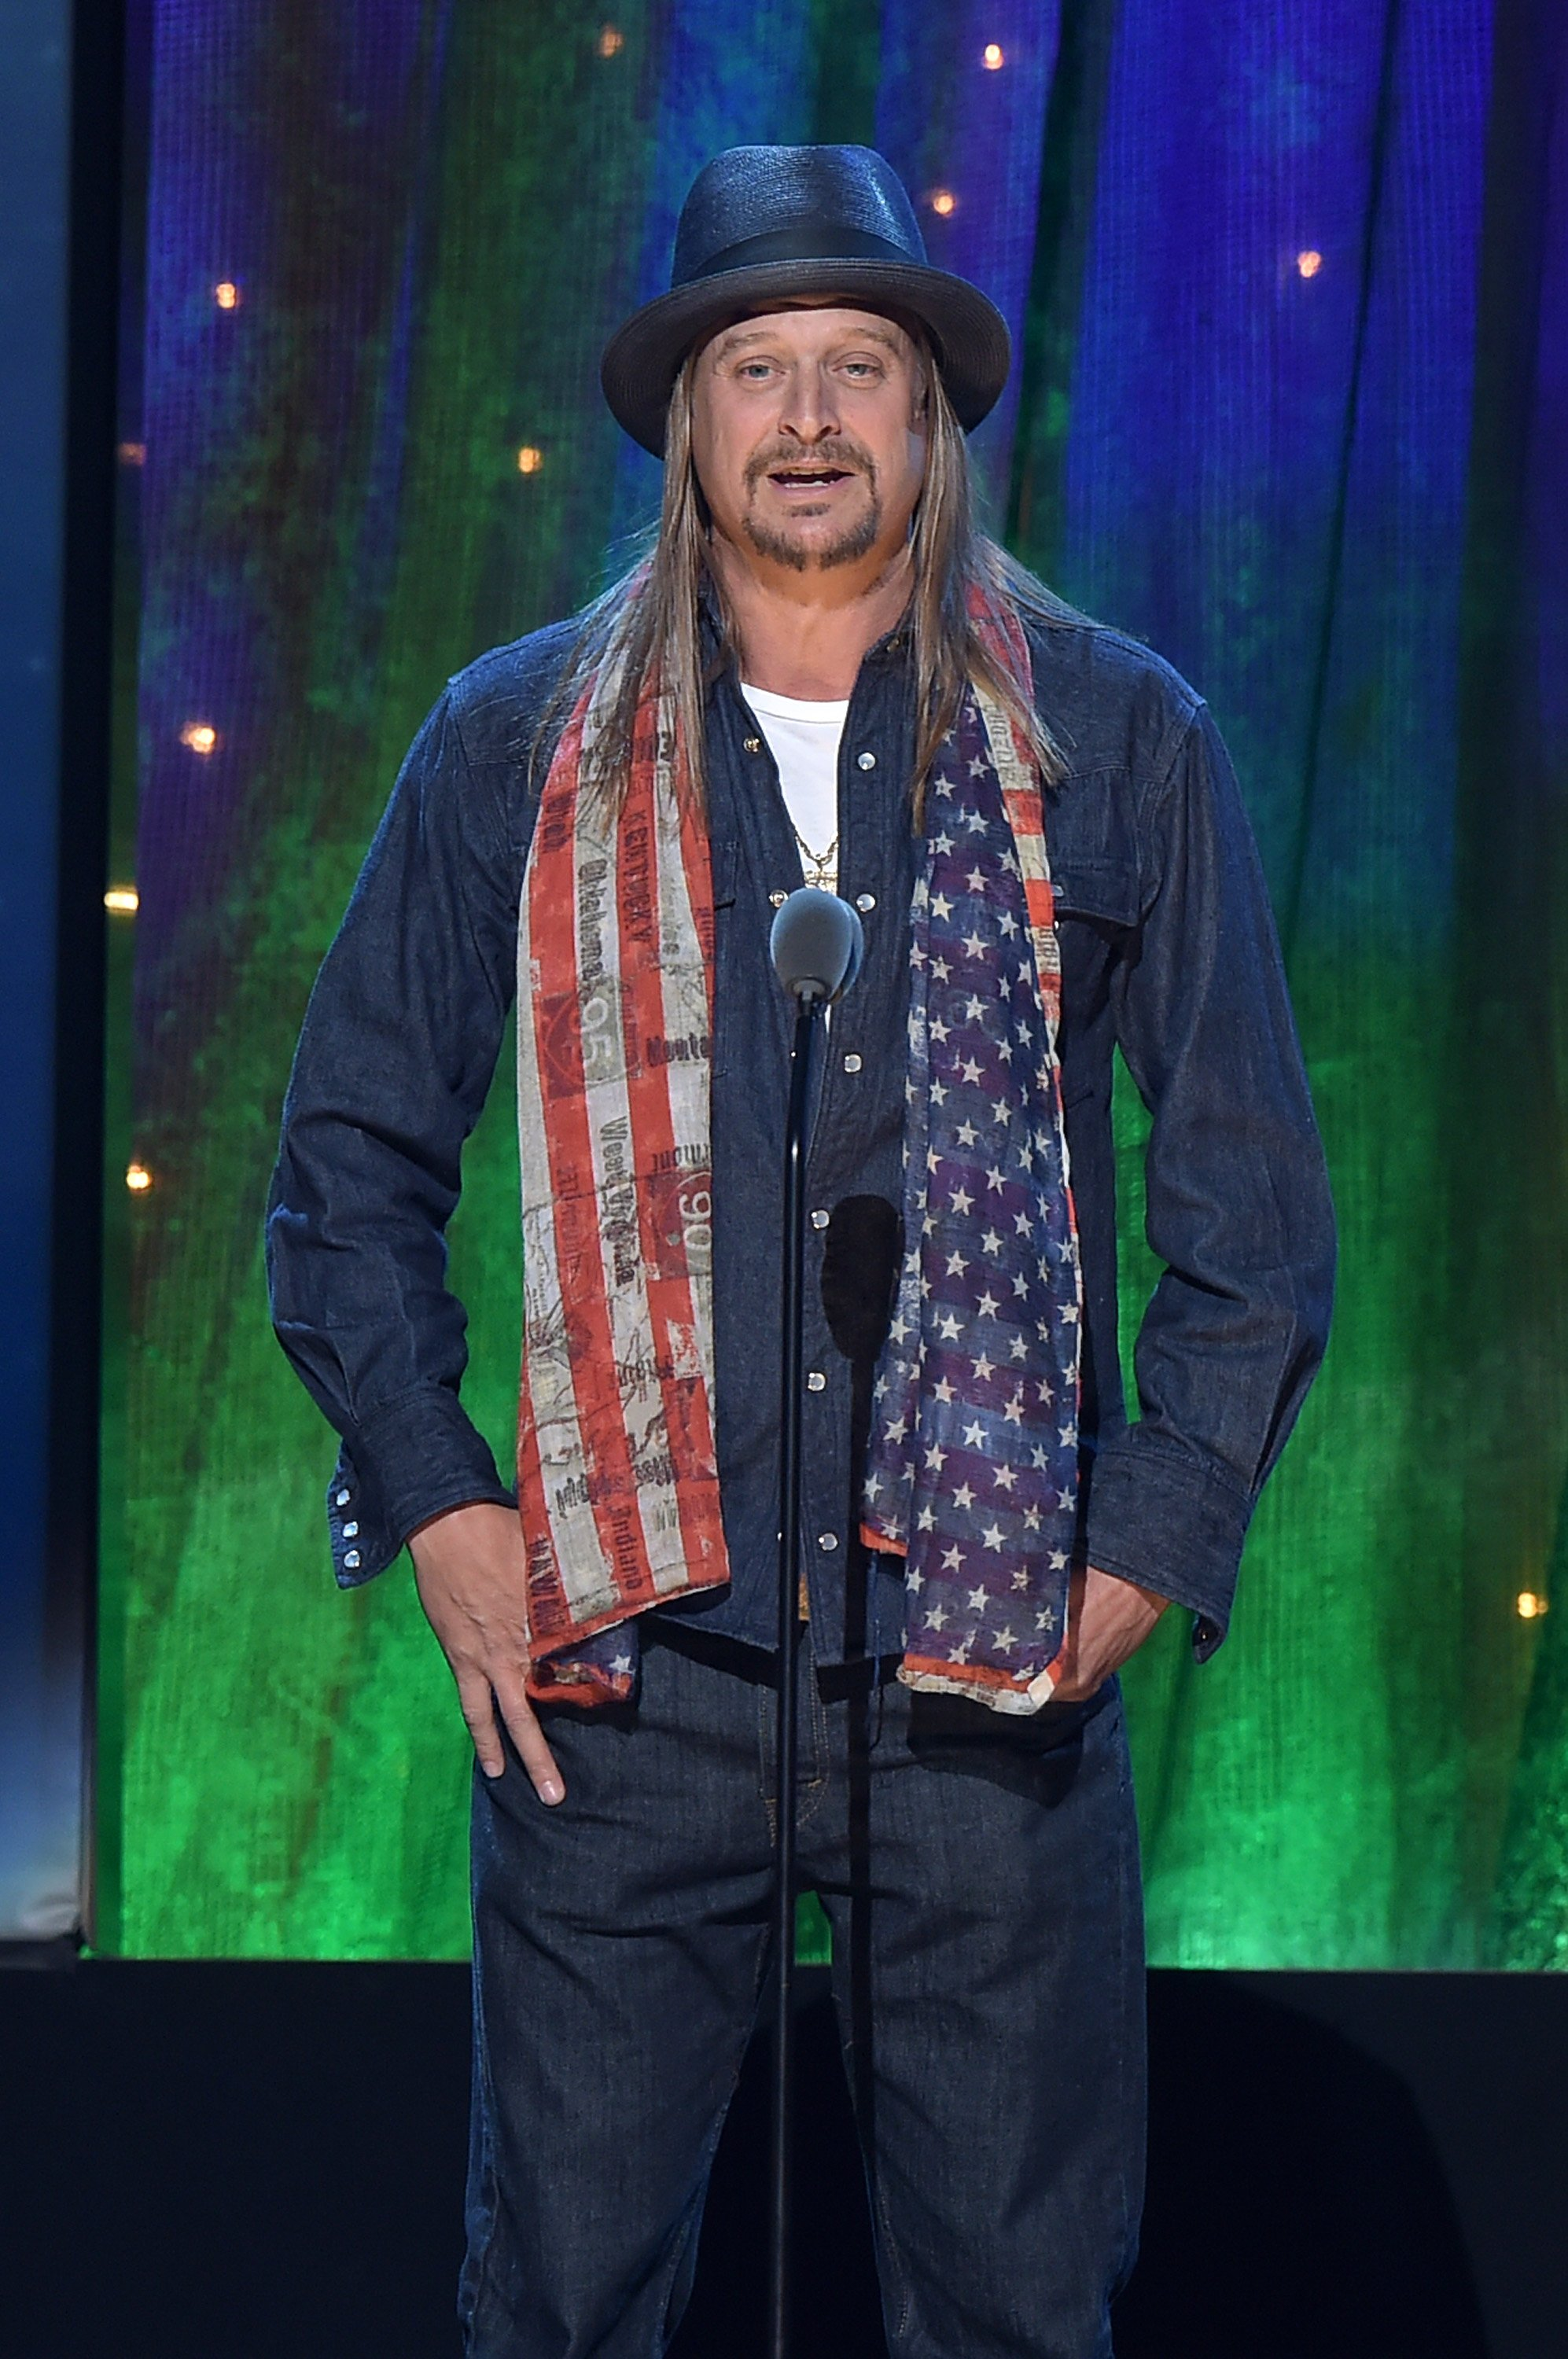 Kid Rock inducts Cheap Trick at the 31st Annual Rock And Roll Hall Of Fame Induction Ceremony at Barclays Center on April 8, 2016, in New York City. | Source: Getty Images.